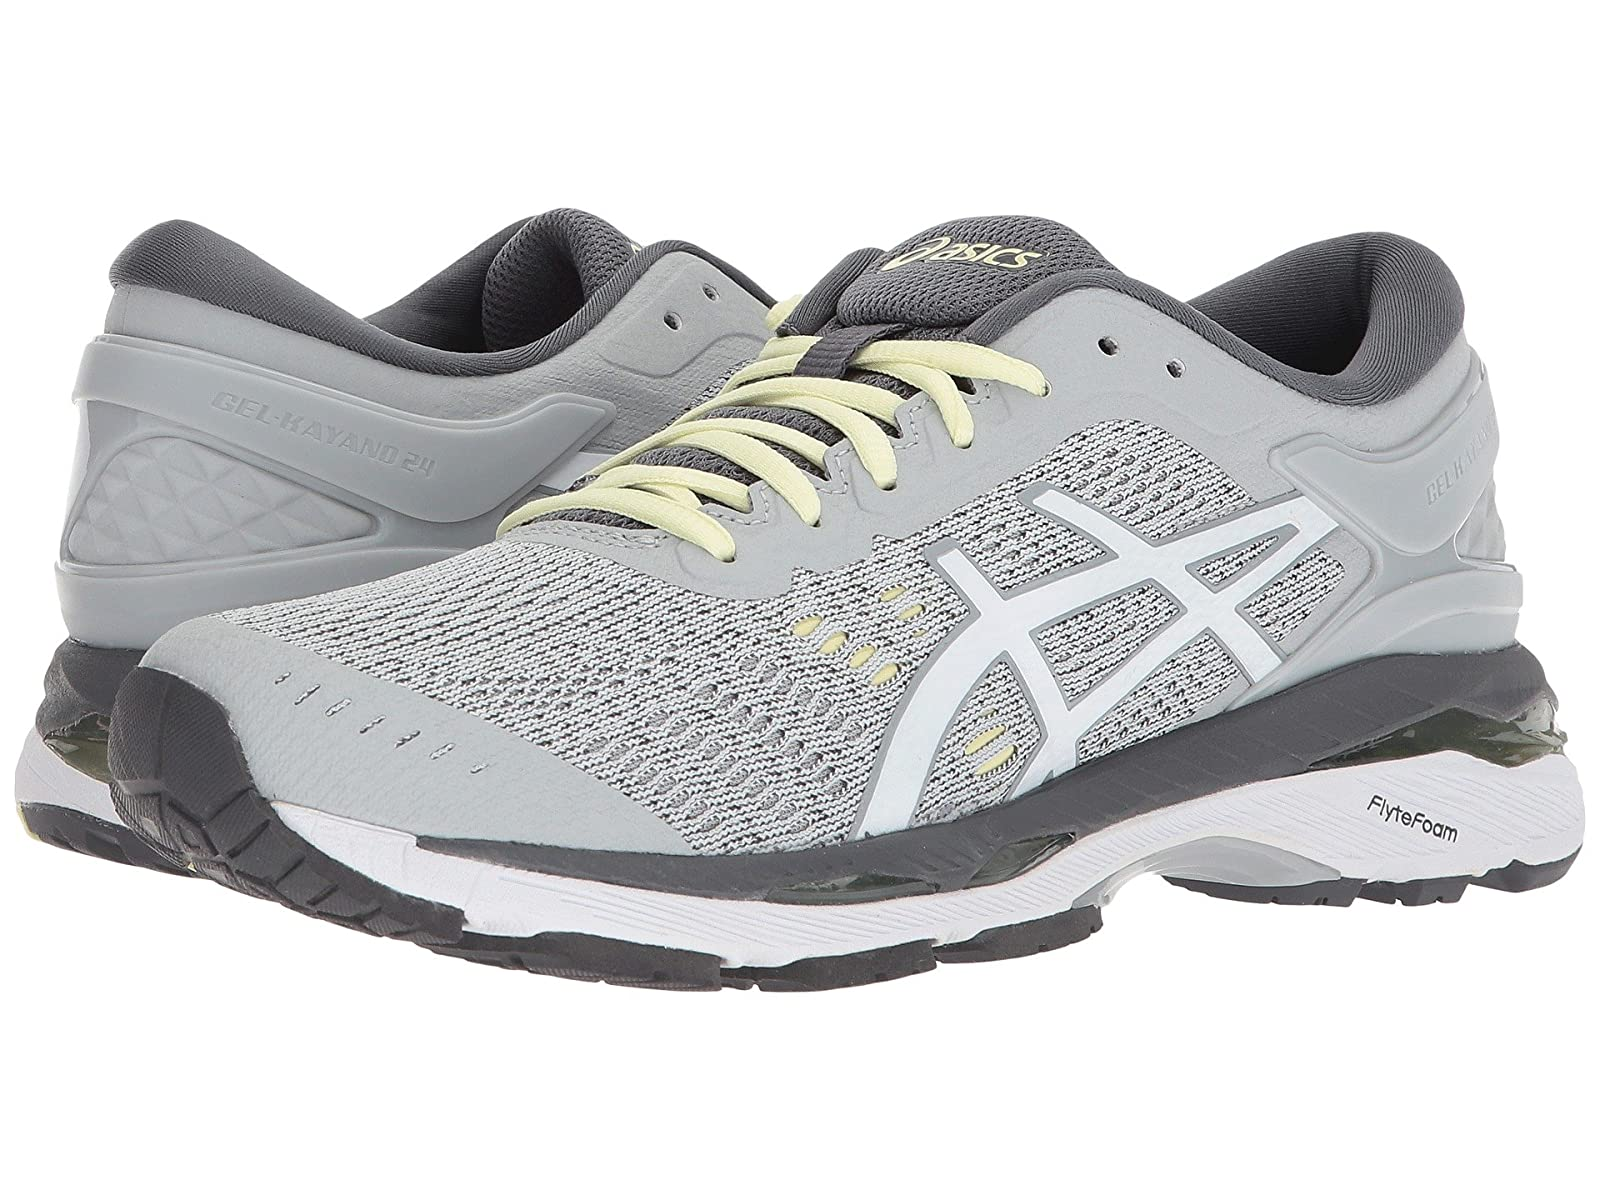 ASICS GEL-Kayano® 24Atmospheric grades have affordable shoes